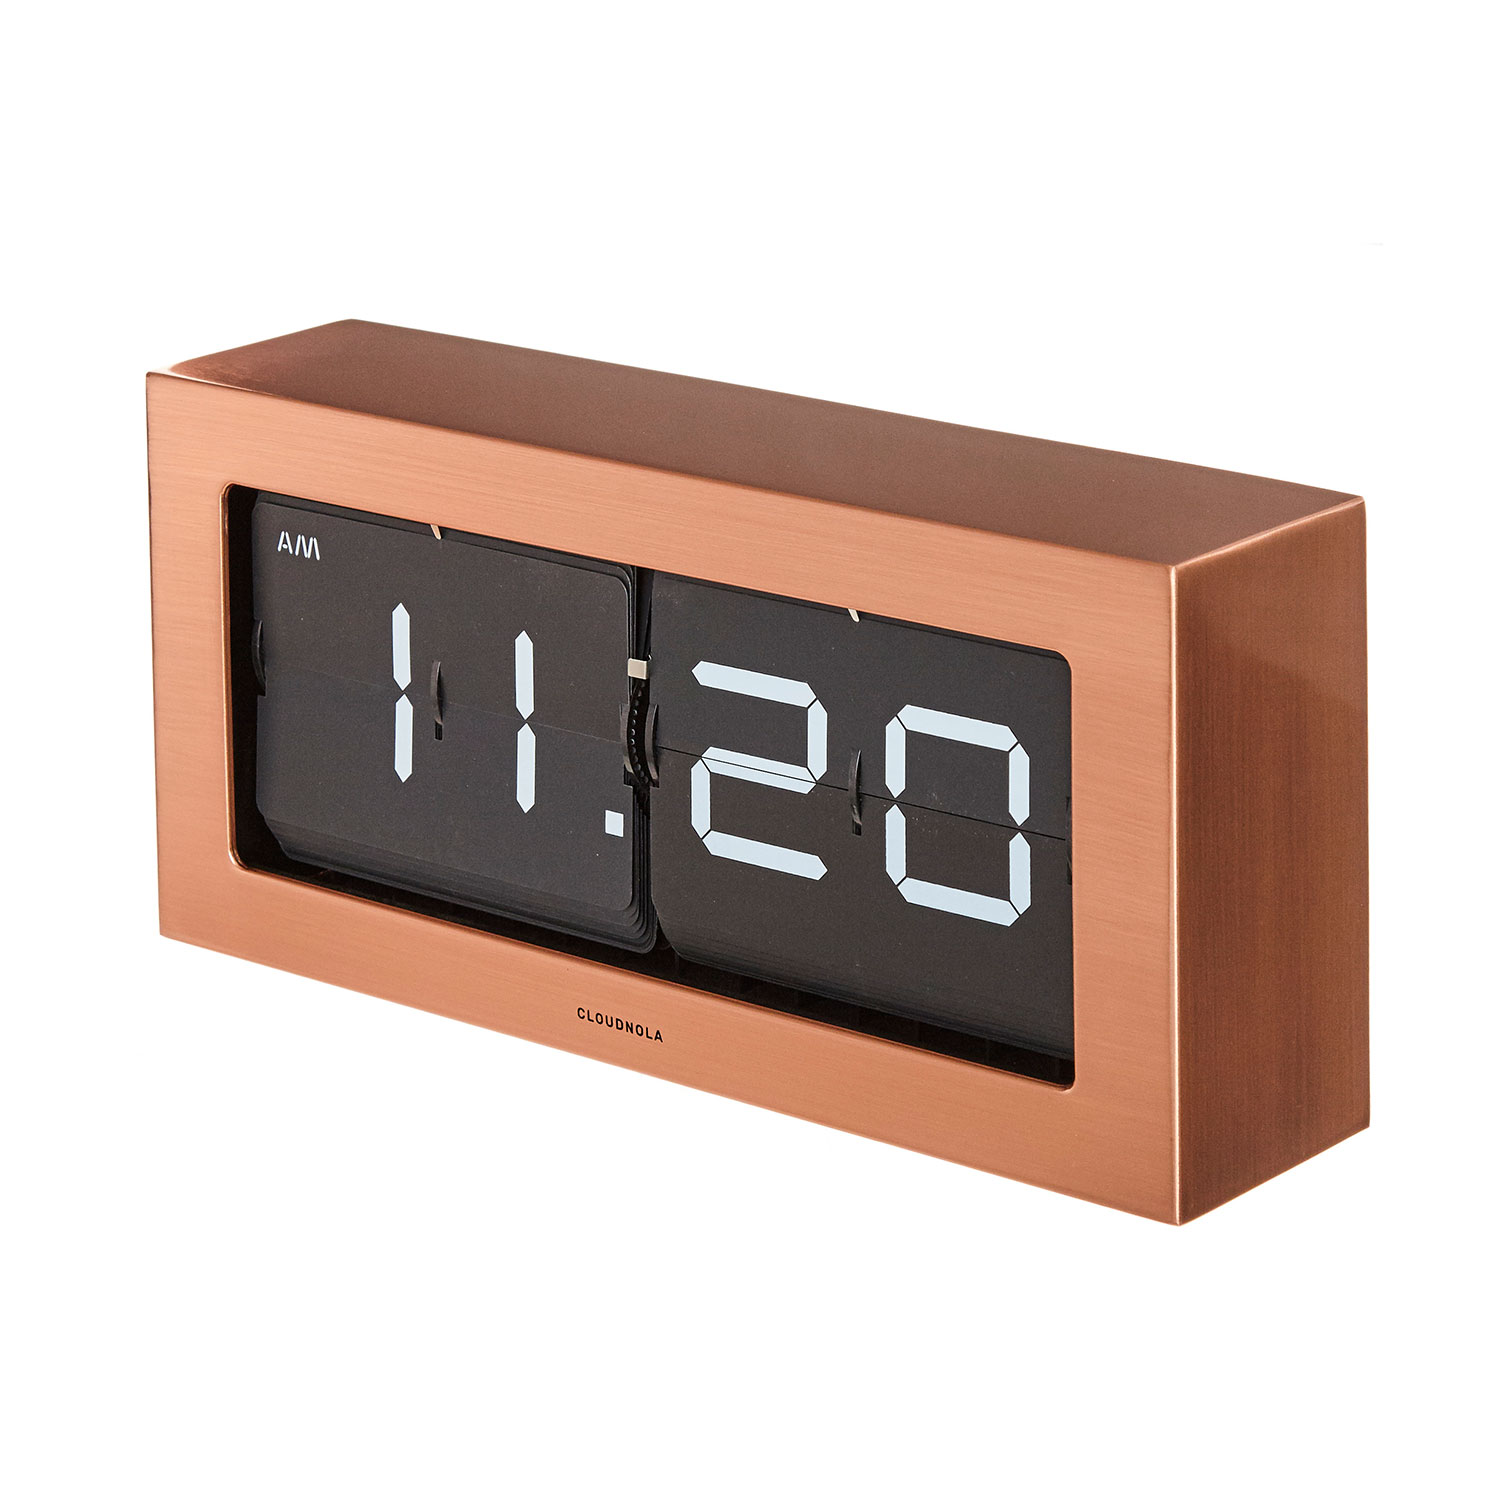 tisch oder wanduhr boss flip kupfer klappzahlenuhr flipclock wohnaccessoires uhren. Black Bedroom Furniture Sets. Home Design Ideas